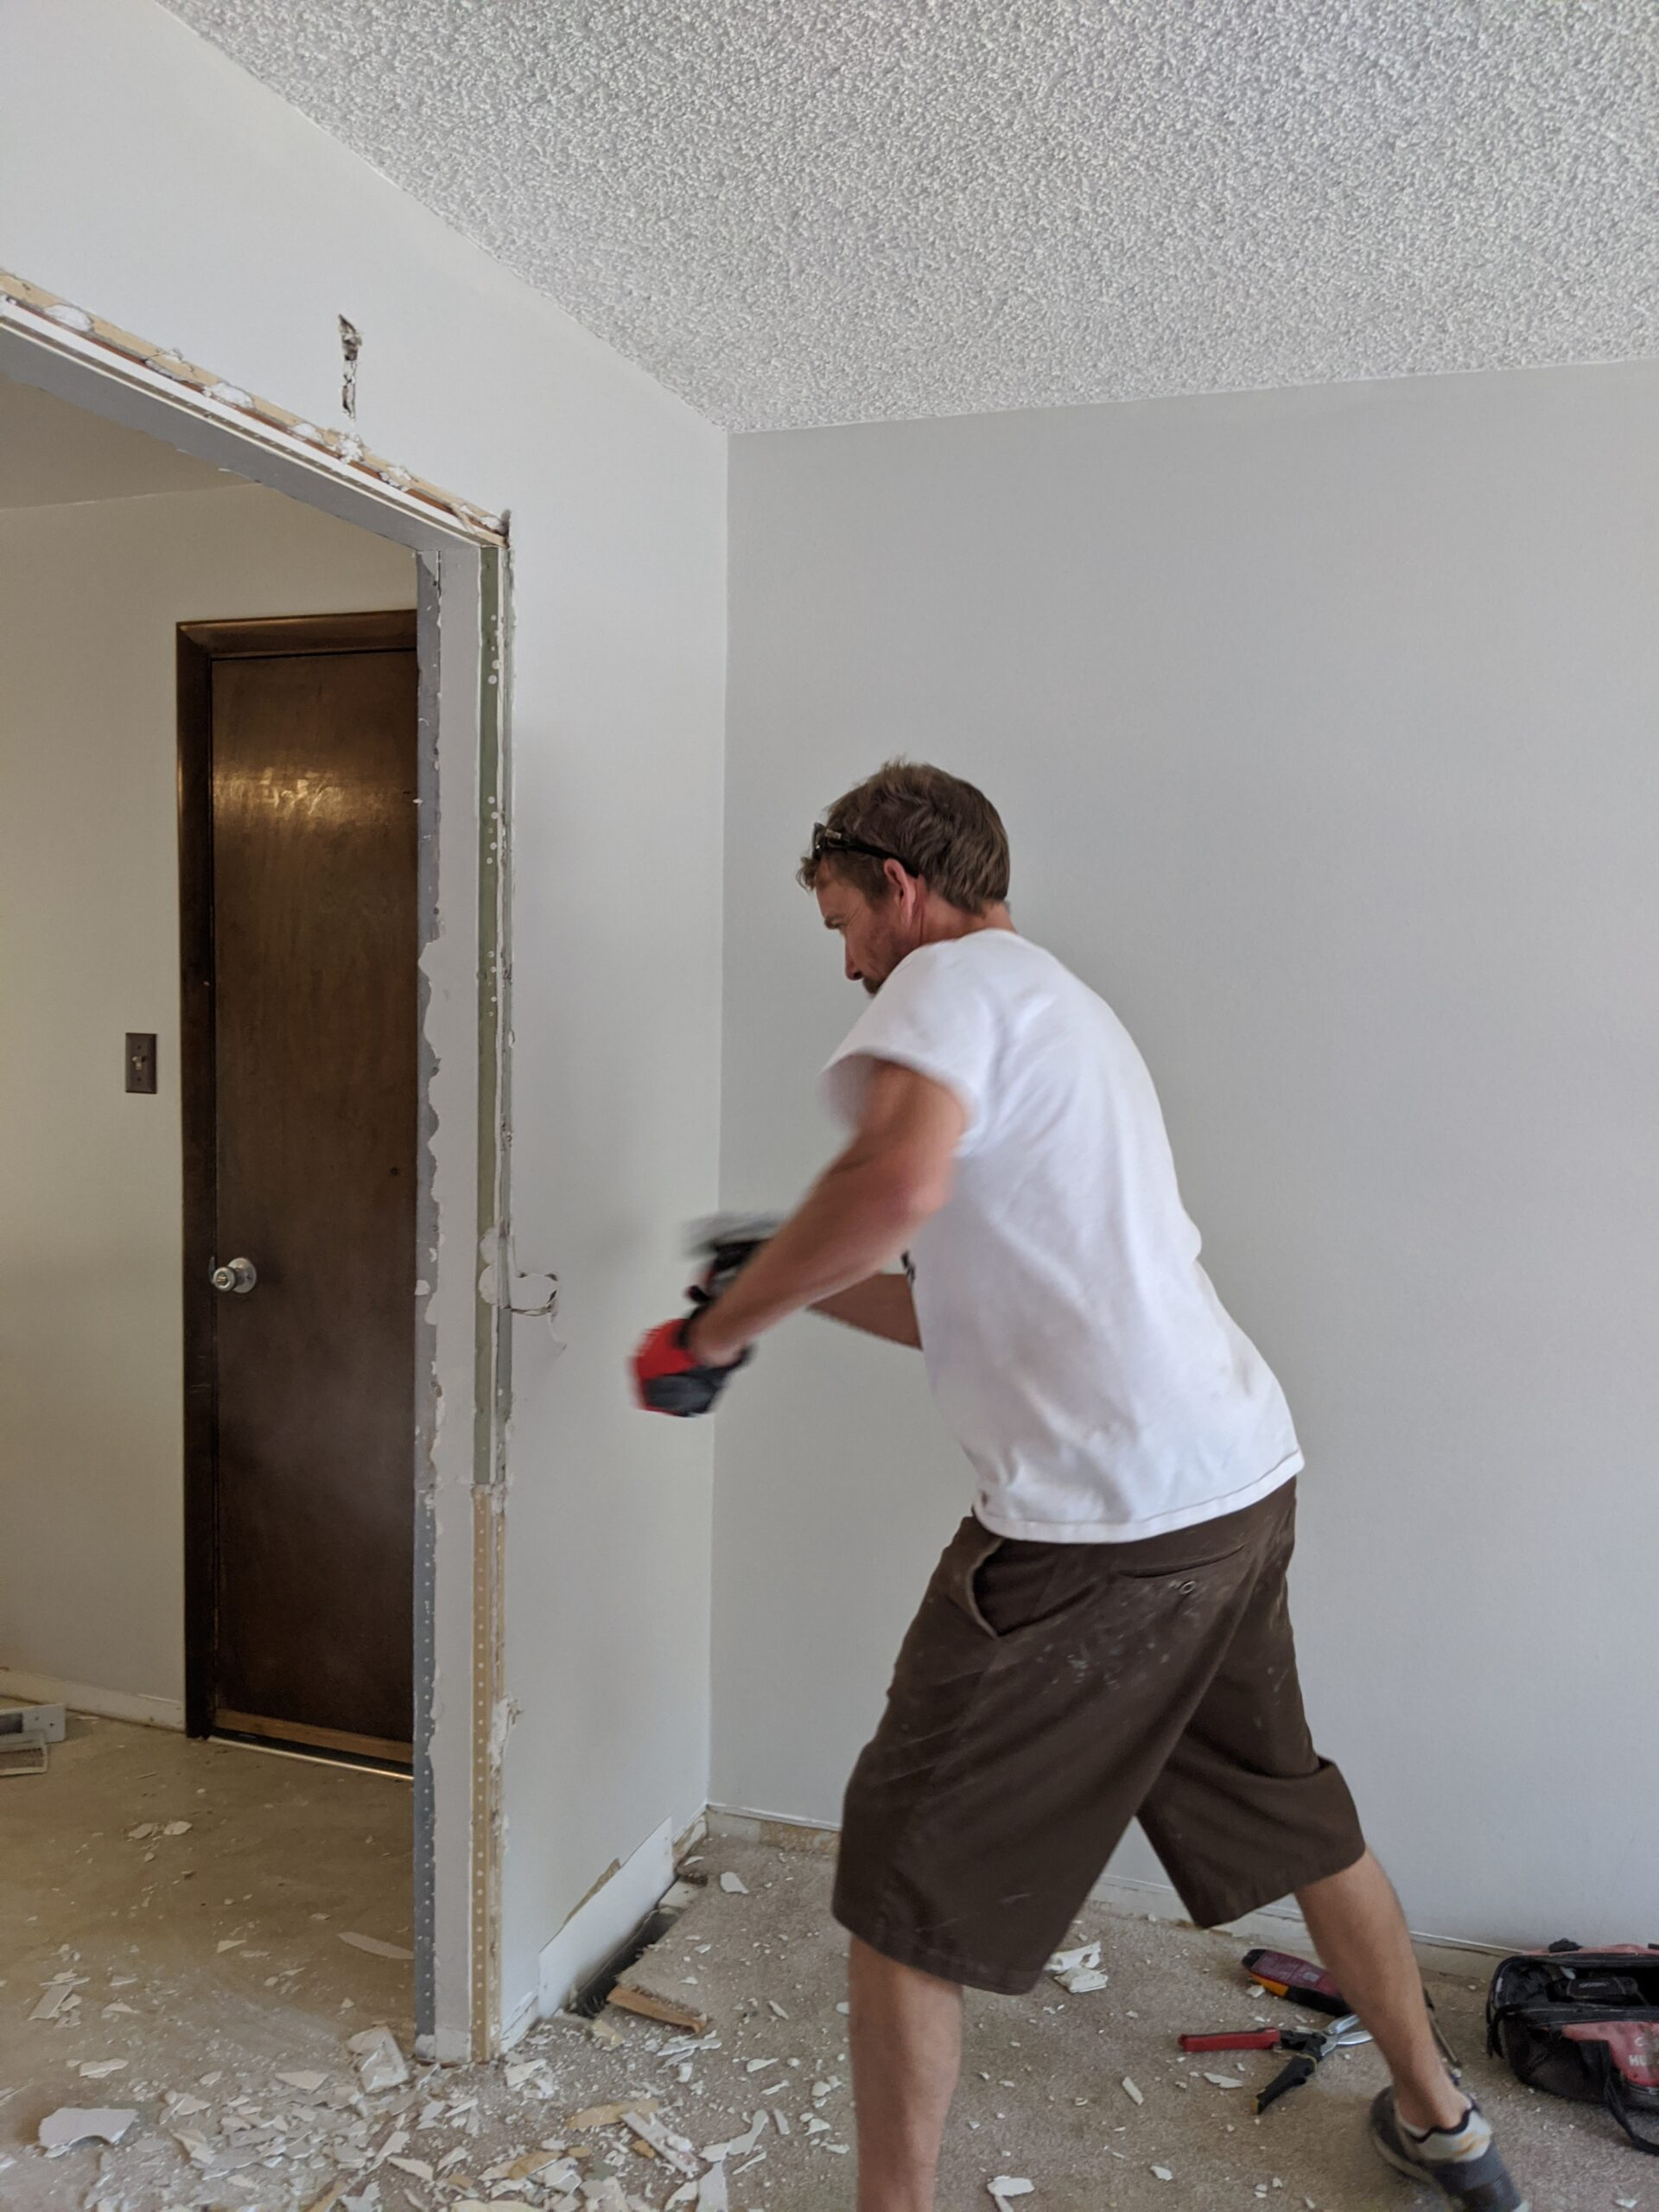 IN PROGRESS Josh demolished the drywall with a sledgehammer to reveal the framing in the wall.